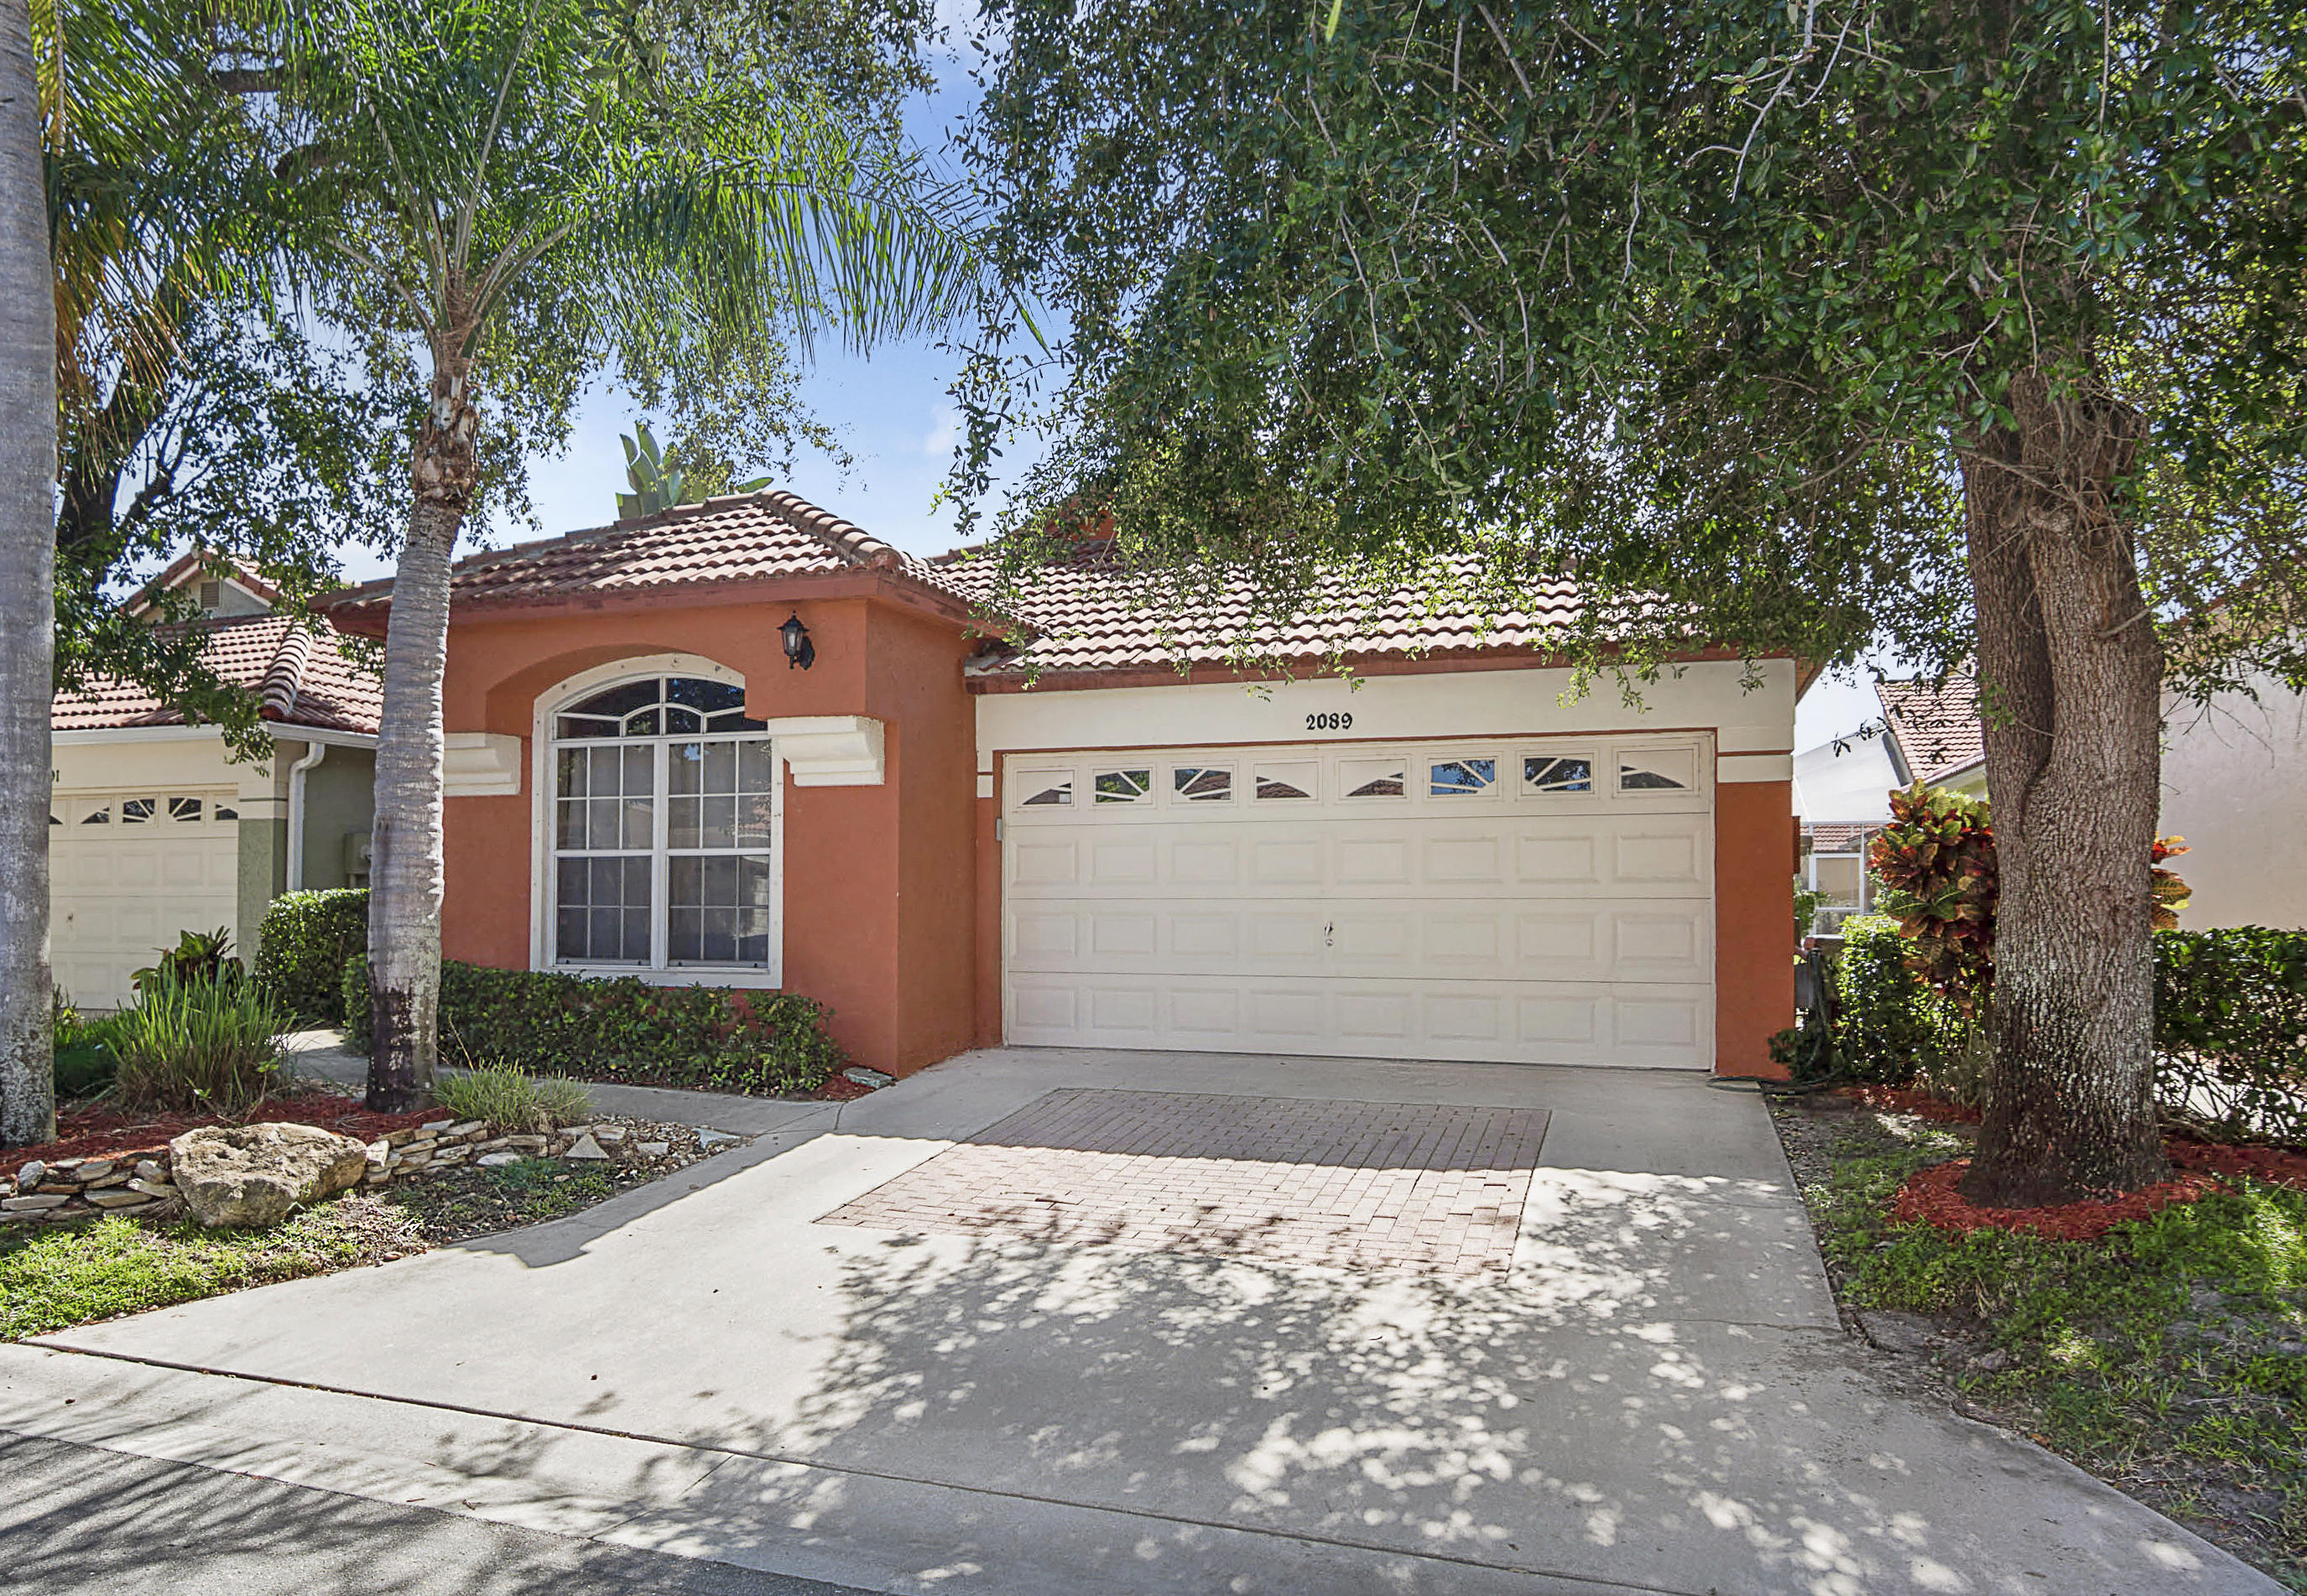 Home for sale in Woodbine Riviera Beach Florida